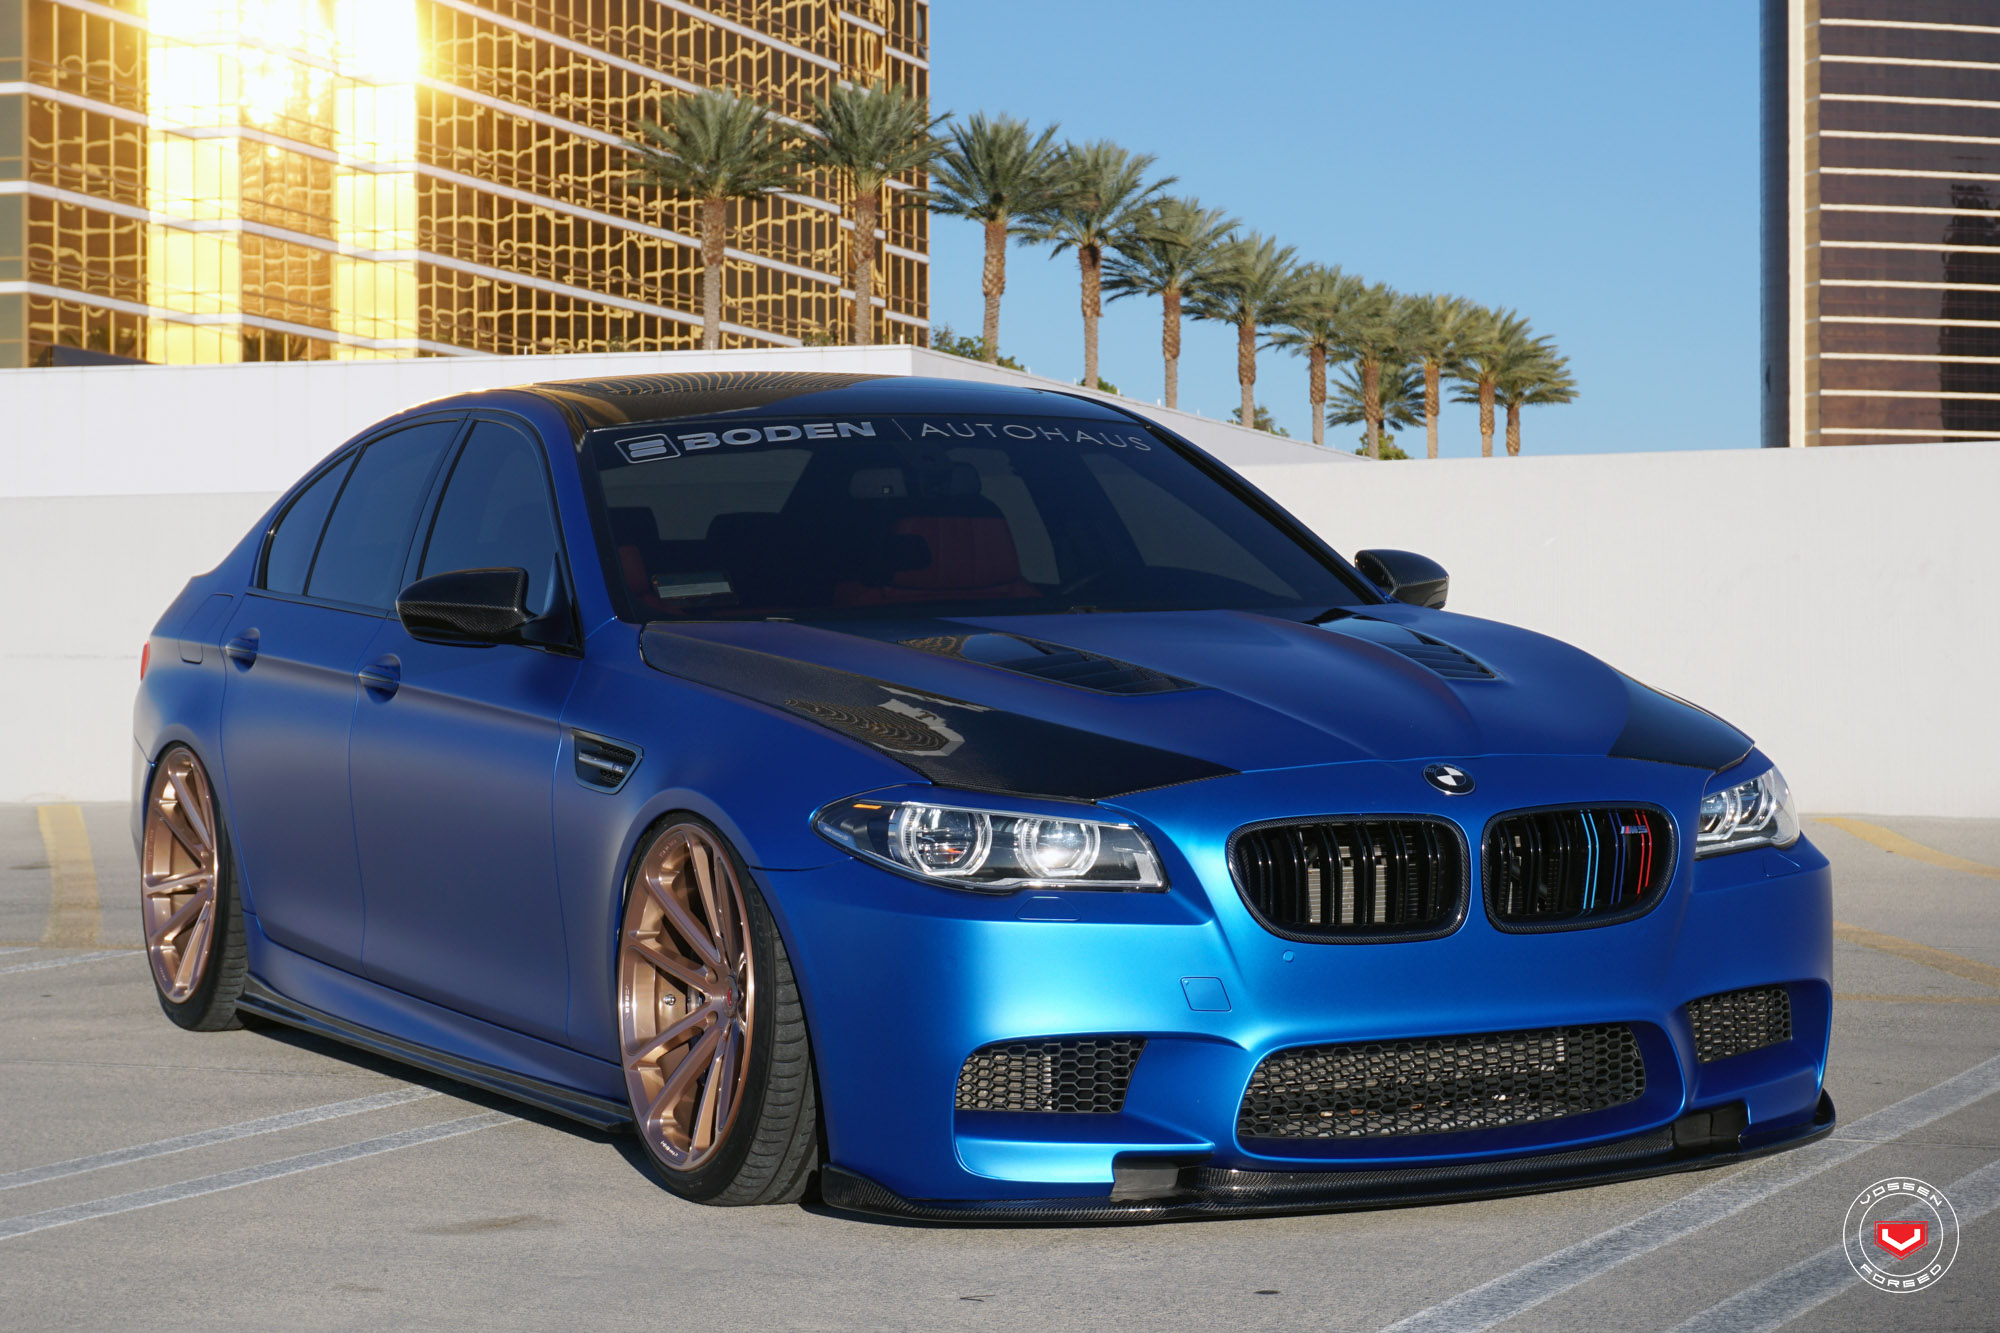 Bmw M5 E39 Custom U003eu003e BMW F10 M5 With Vossen Wheels | BMW Car Tuning